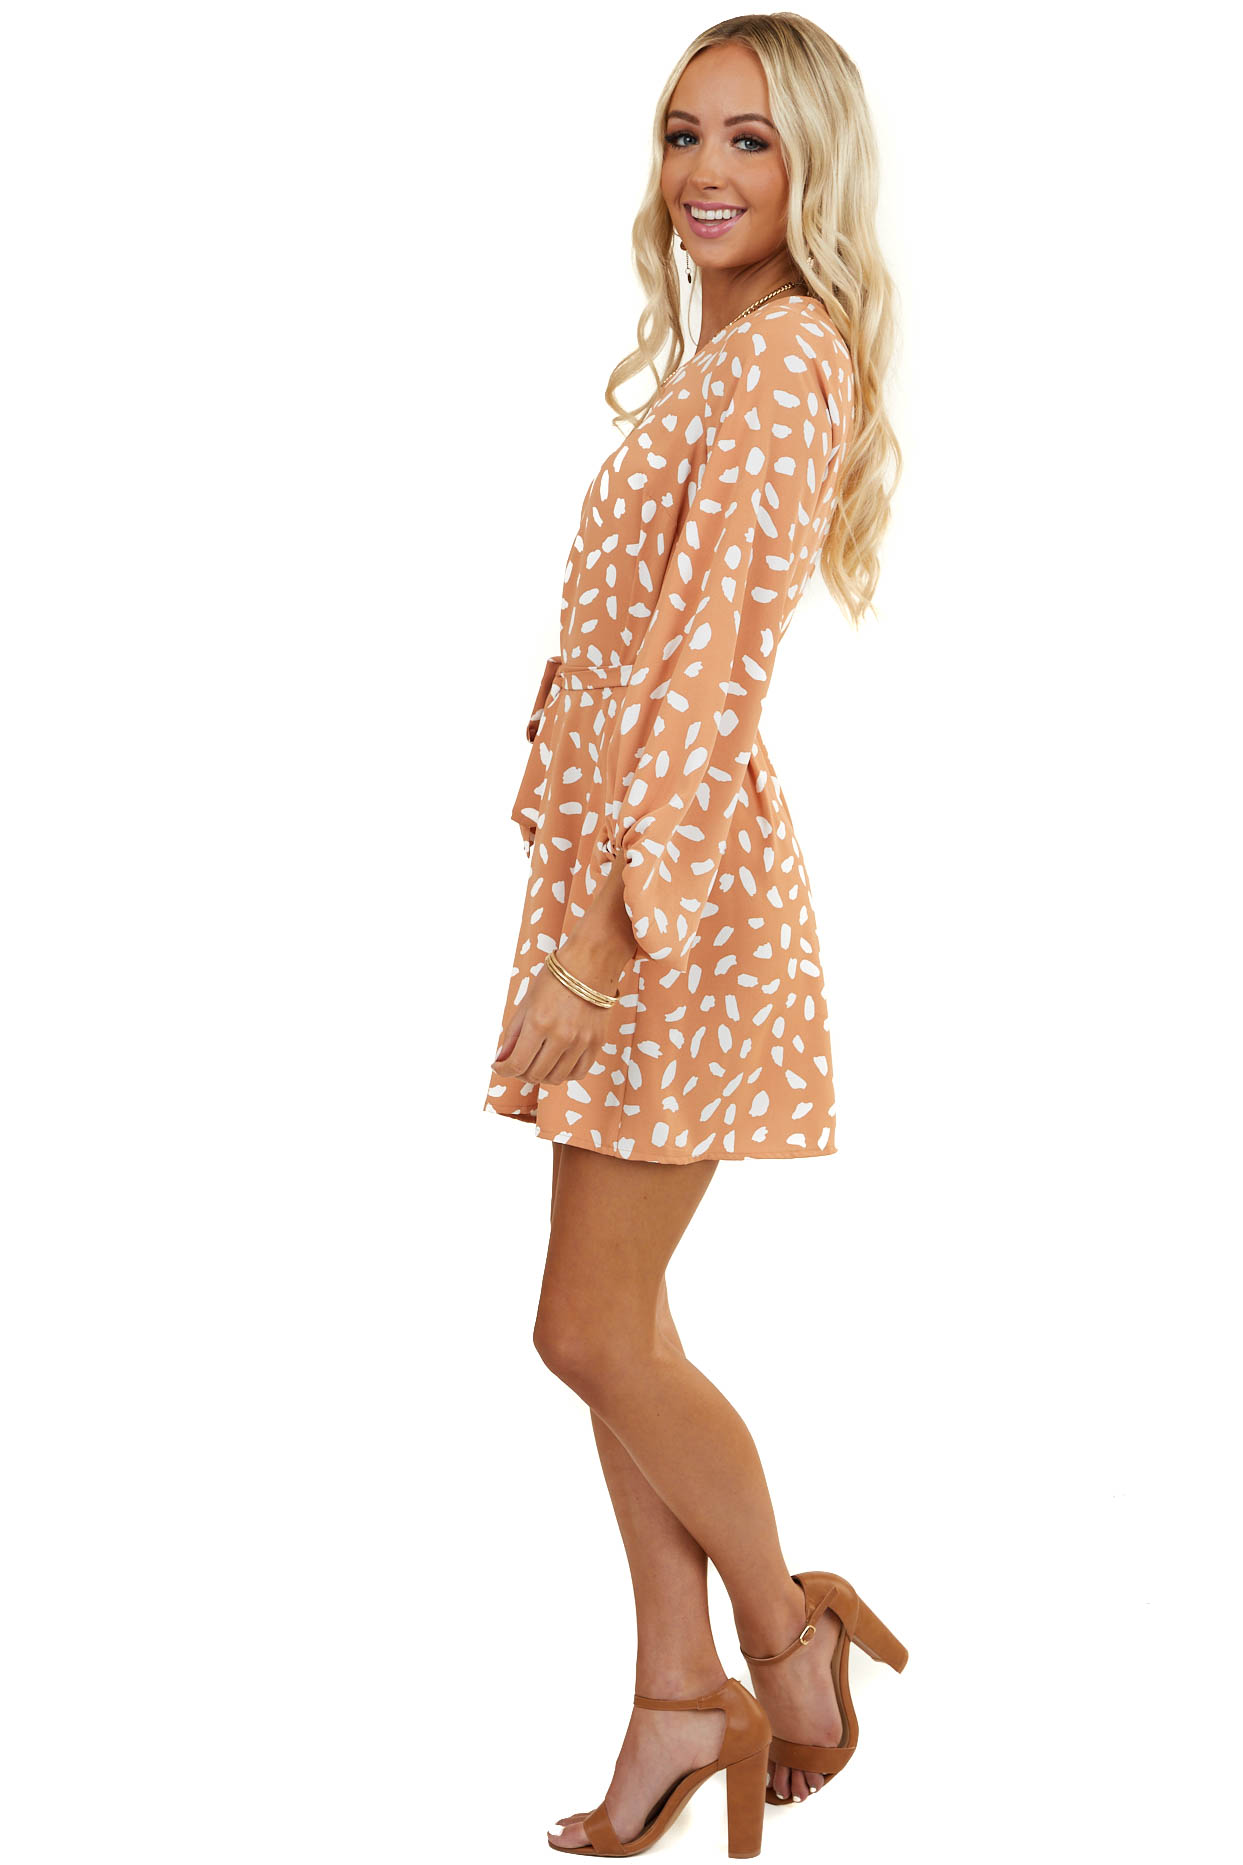 Caramel and Off White Short Dress with Long Bubble Sleeves